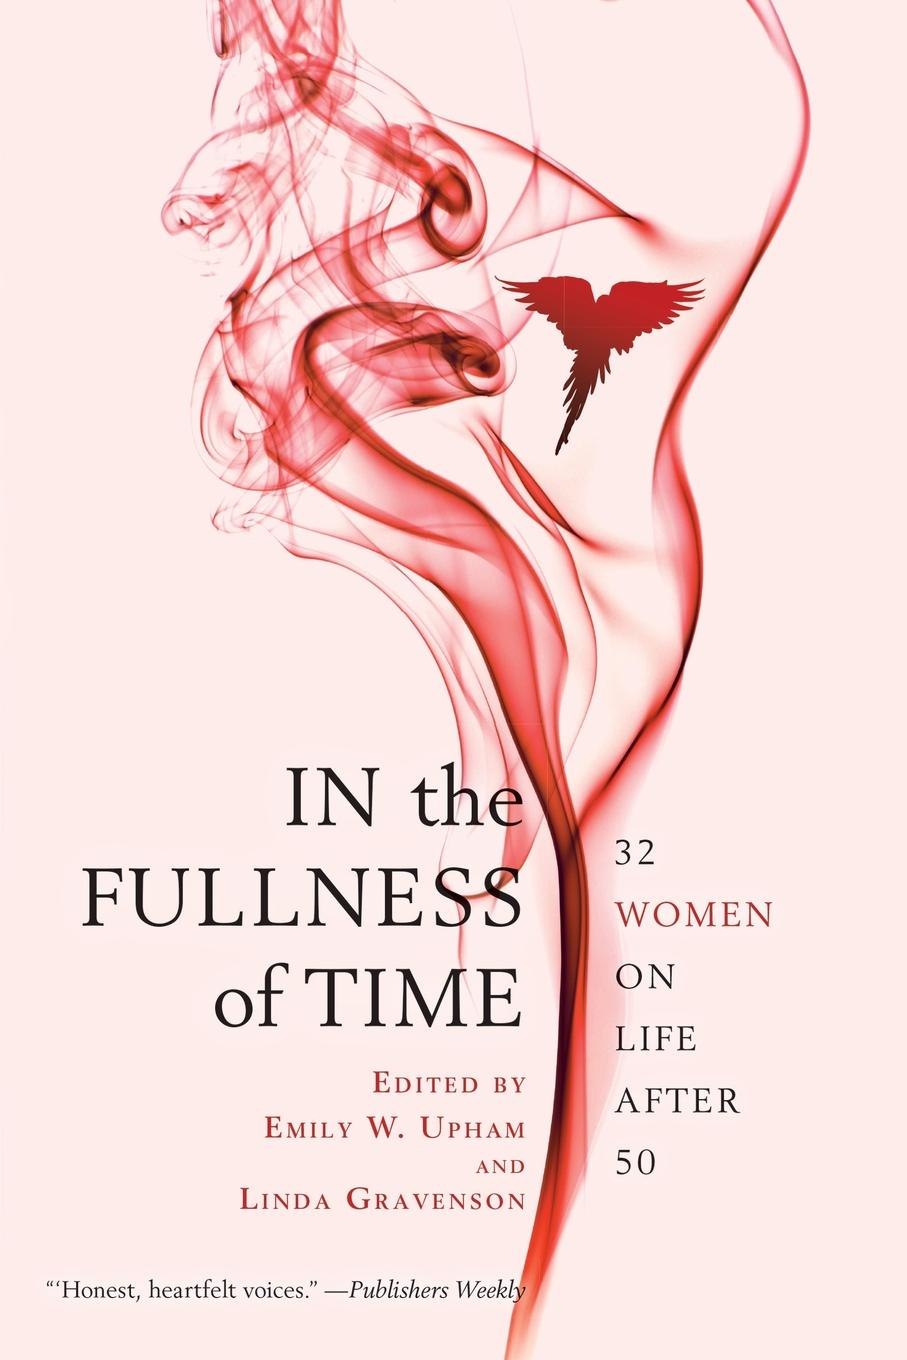 Emily W. Upham In the Fullness of Time. 32 Women on Life After 50 путешествие времени voyage of time life